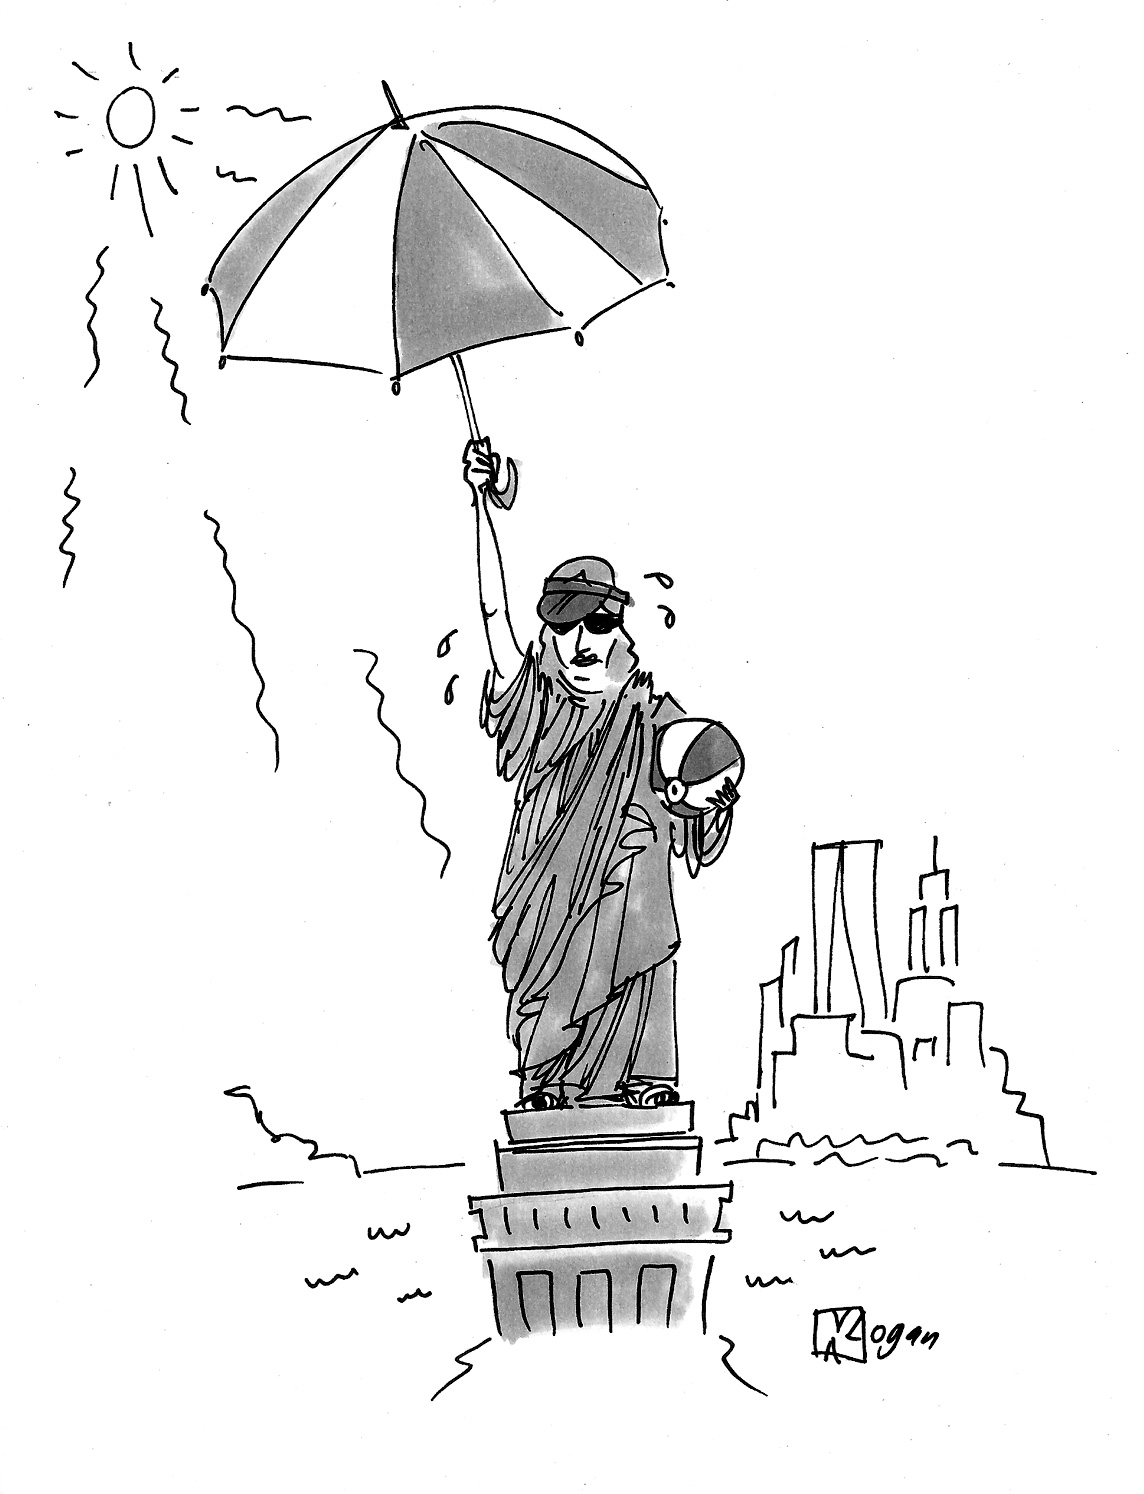 (The Statue of Liberty is holding a parasol and beach ball.)